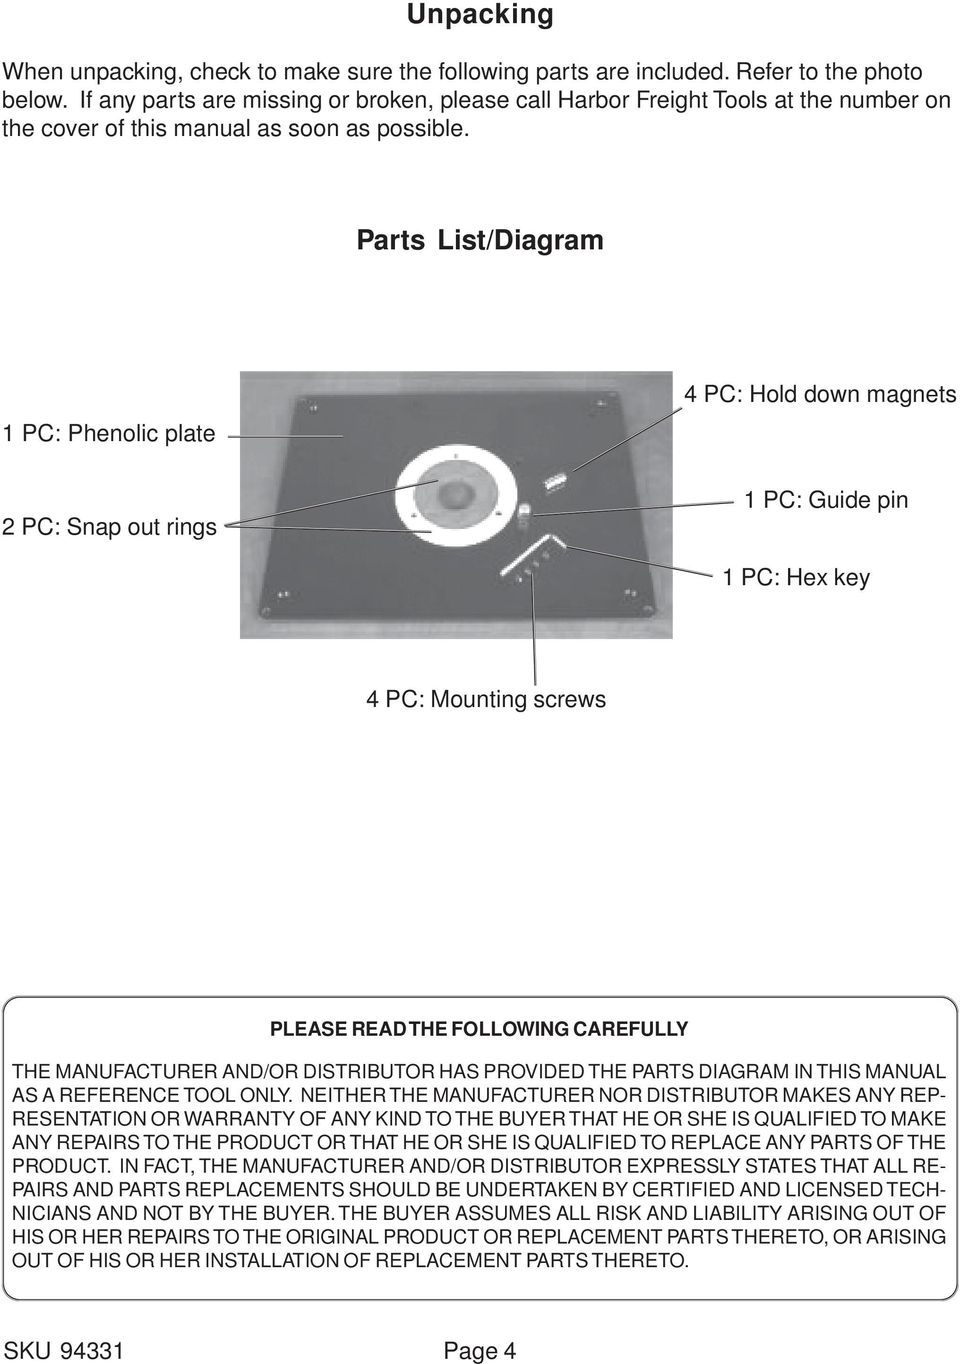 Parts List/Diagram 1 PC: Phenolic plate 2 PC: Snap out rings 4 PC: Hold down magnets 1 PC: Guide pin 1 PC: Hex key 4 PC: Mounting screws PLEASE READ THE FOLLOWING CAREFULLY THE MANUFACTURER AND/OR